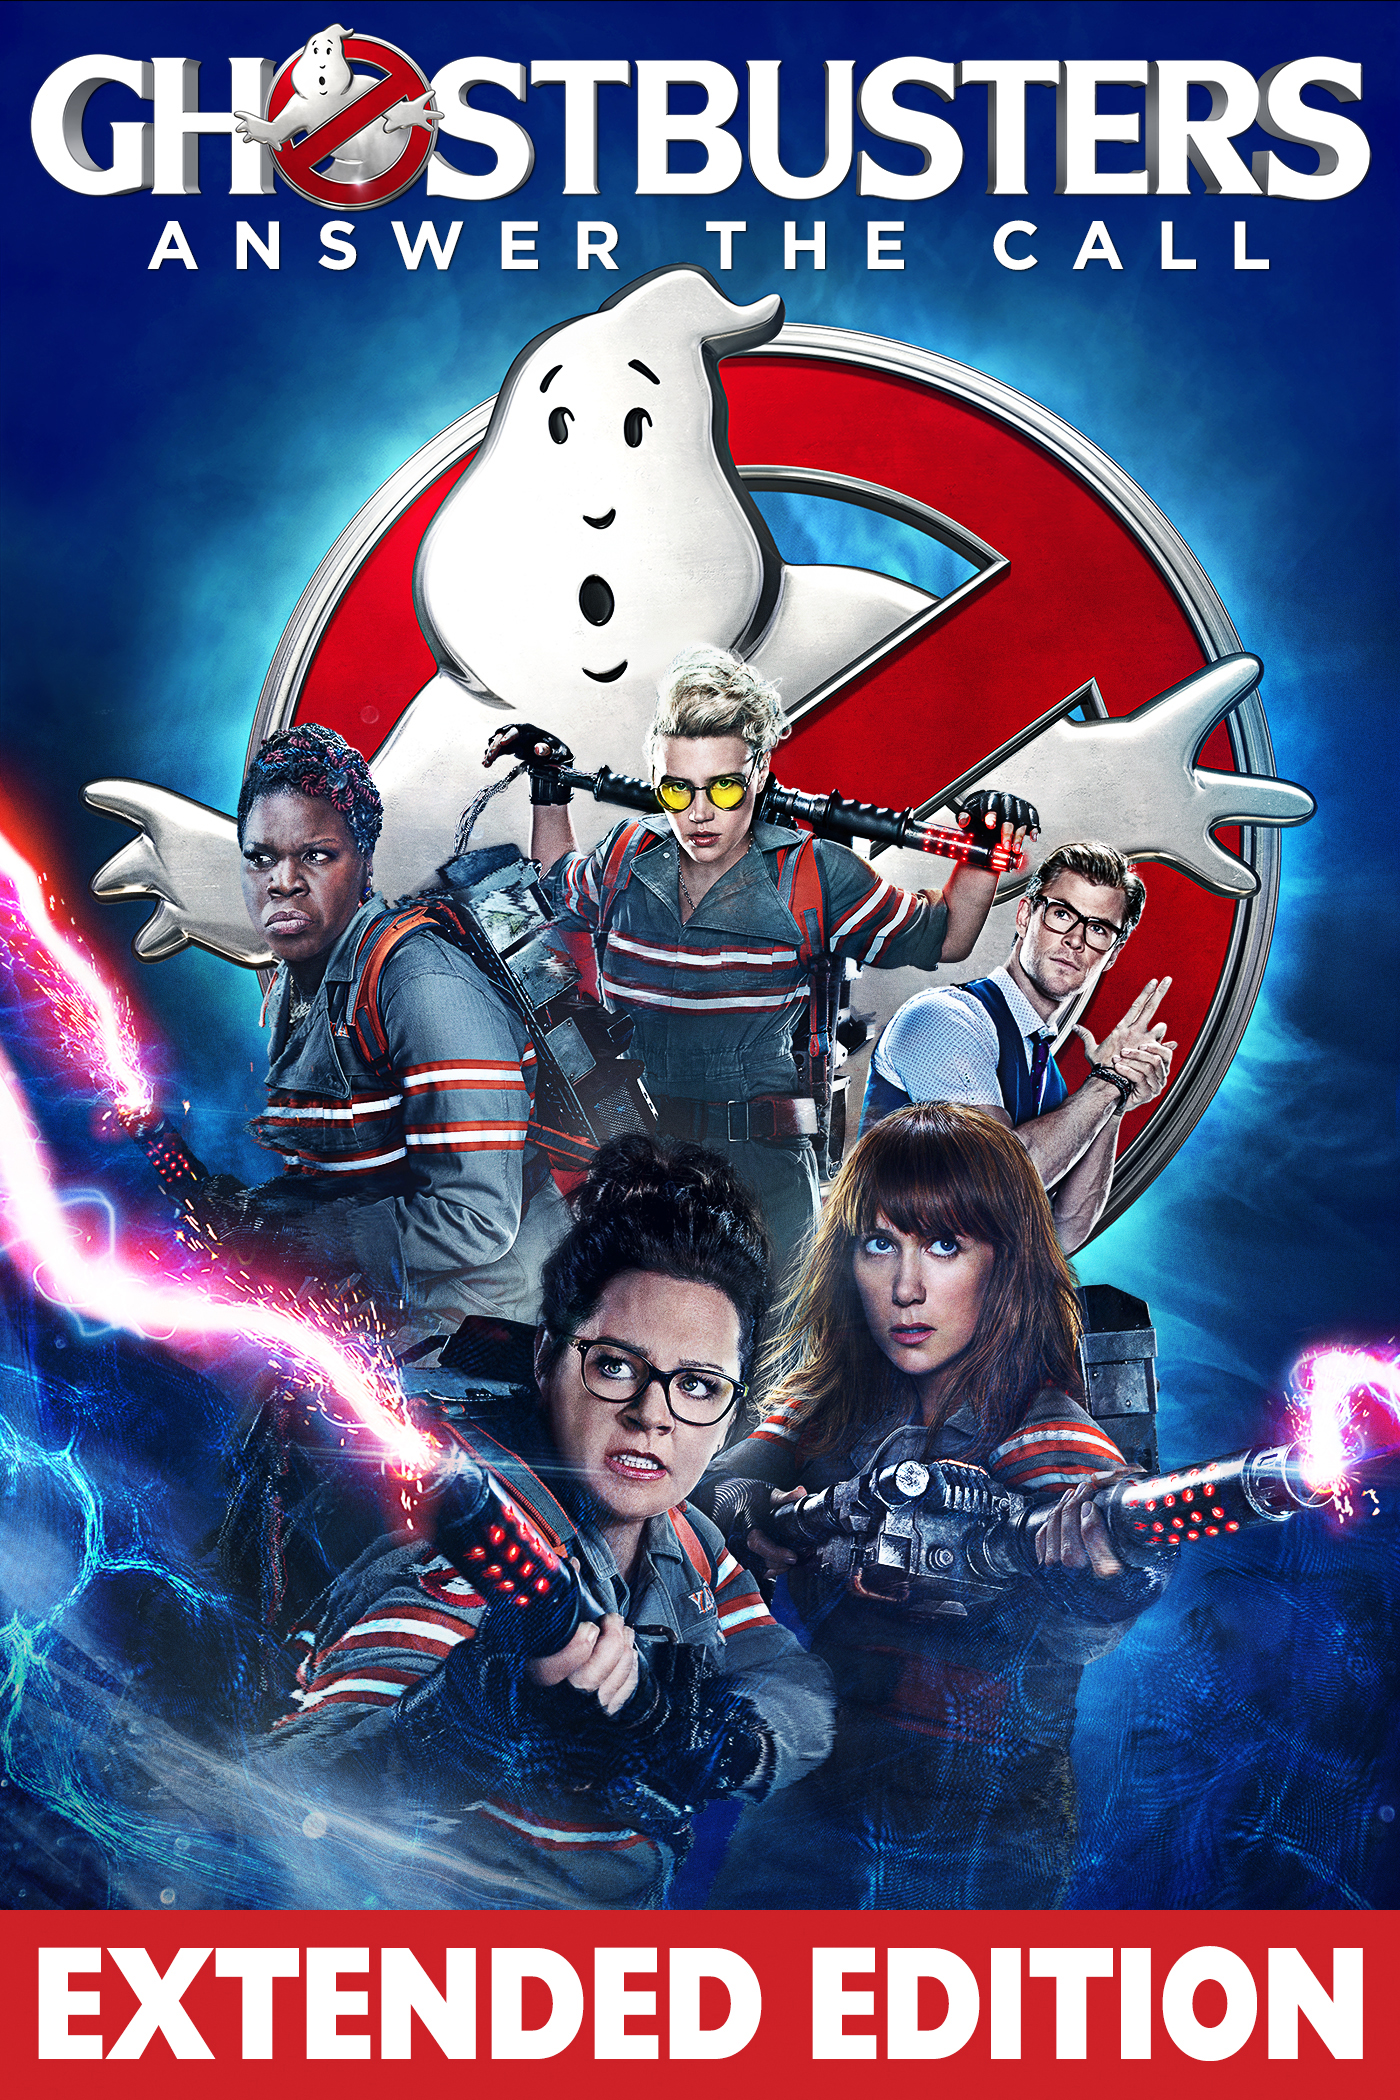 Ghostbusters (2016) (Extended Edition)